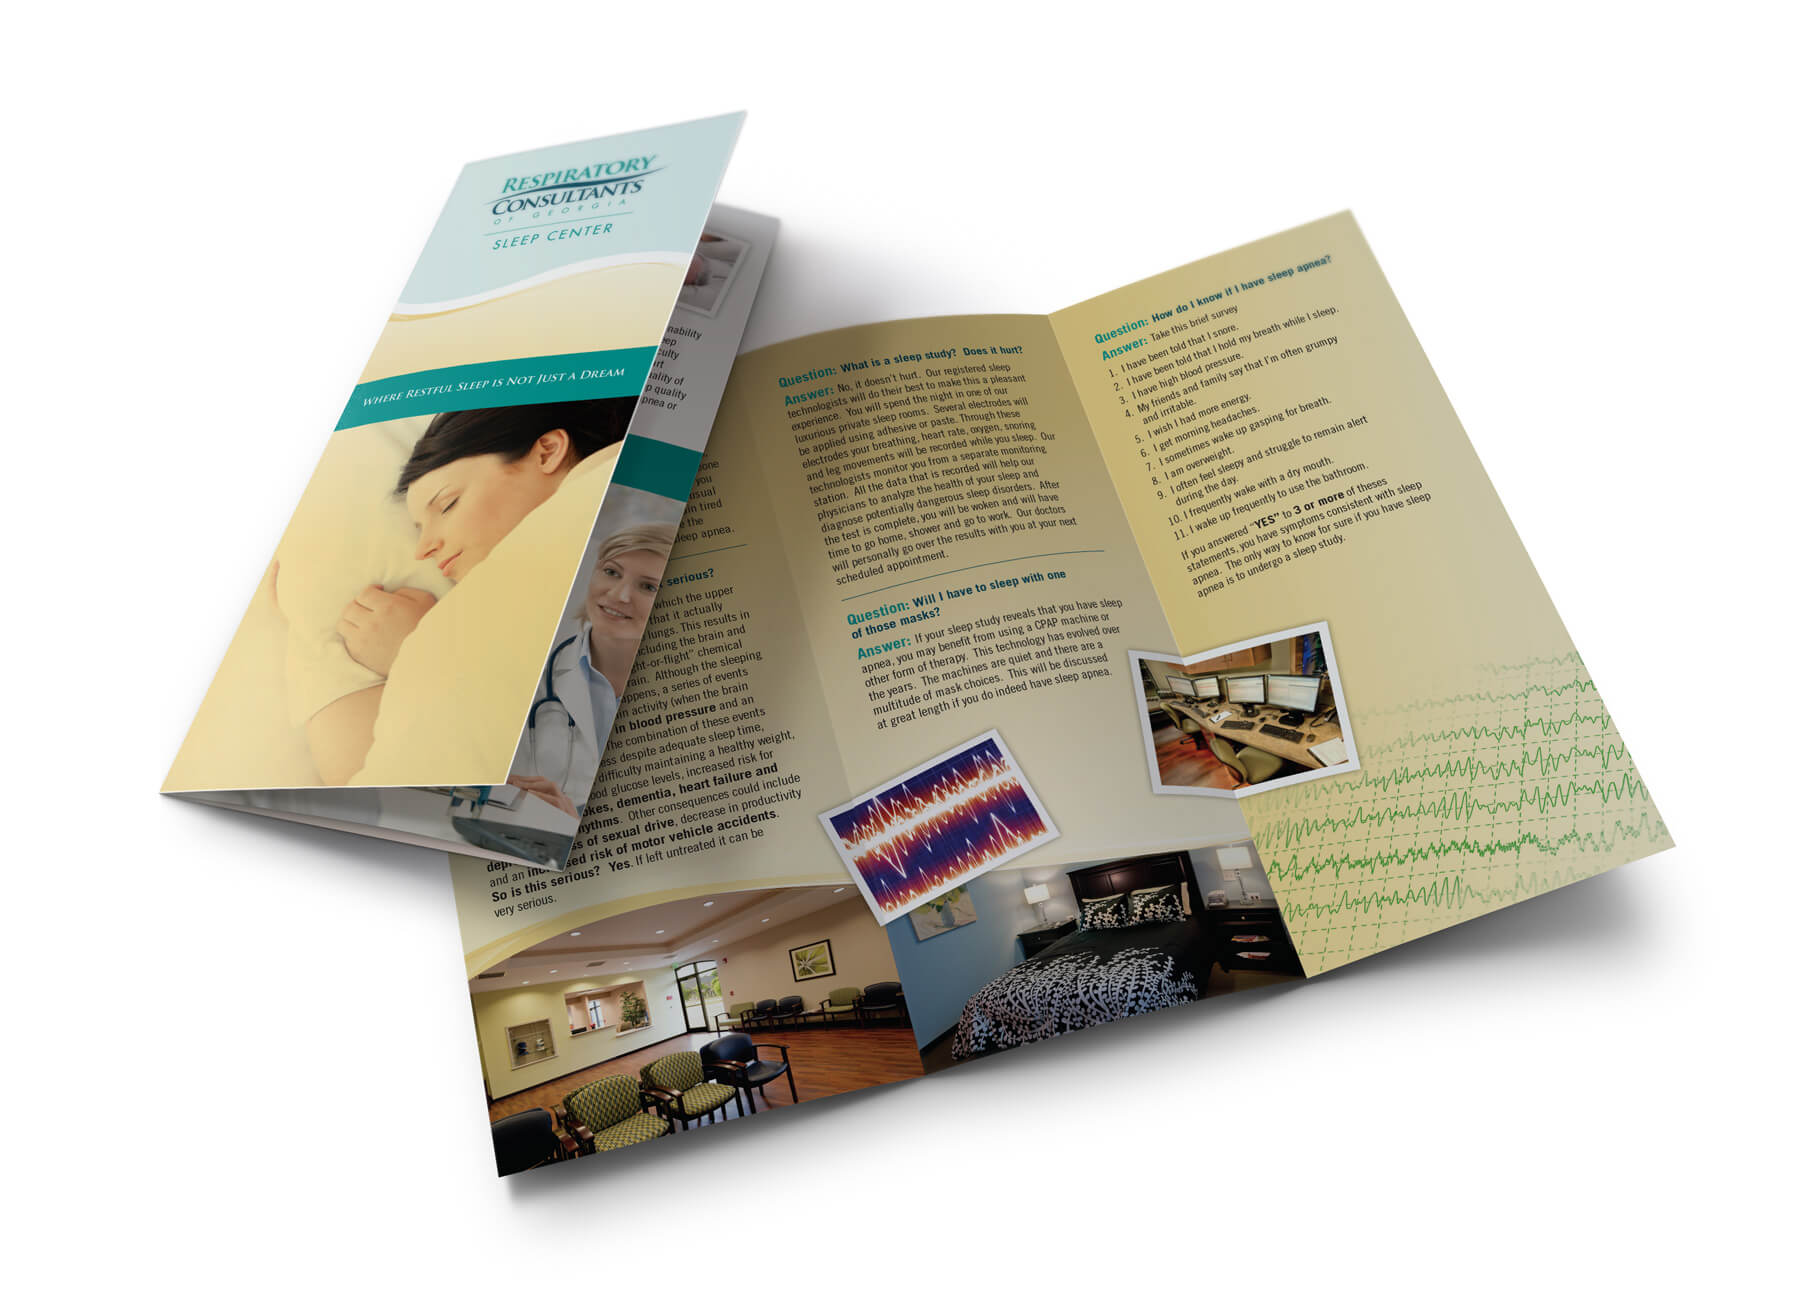 Image perceived to contain Brochure Flyer Paper Poster Banister Handrail Staircase  on the Calhoun, GA Web Design page